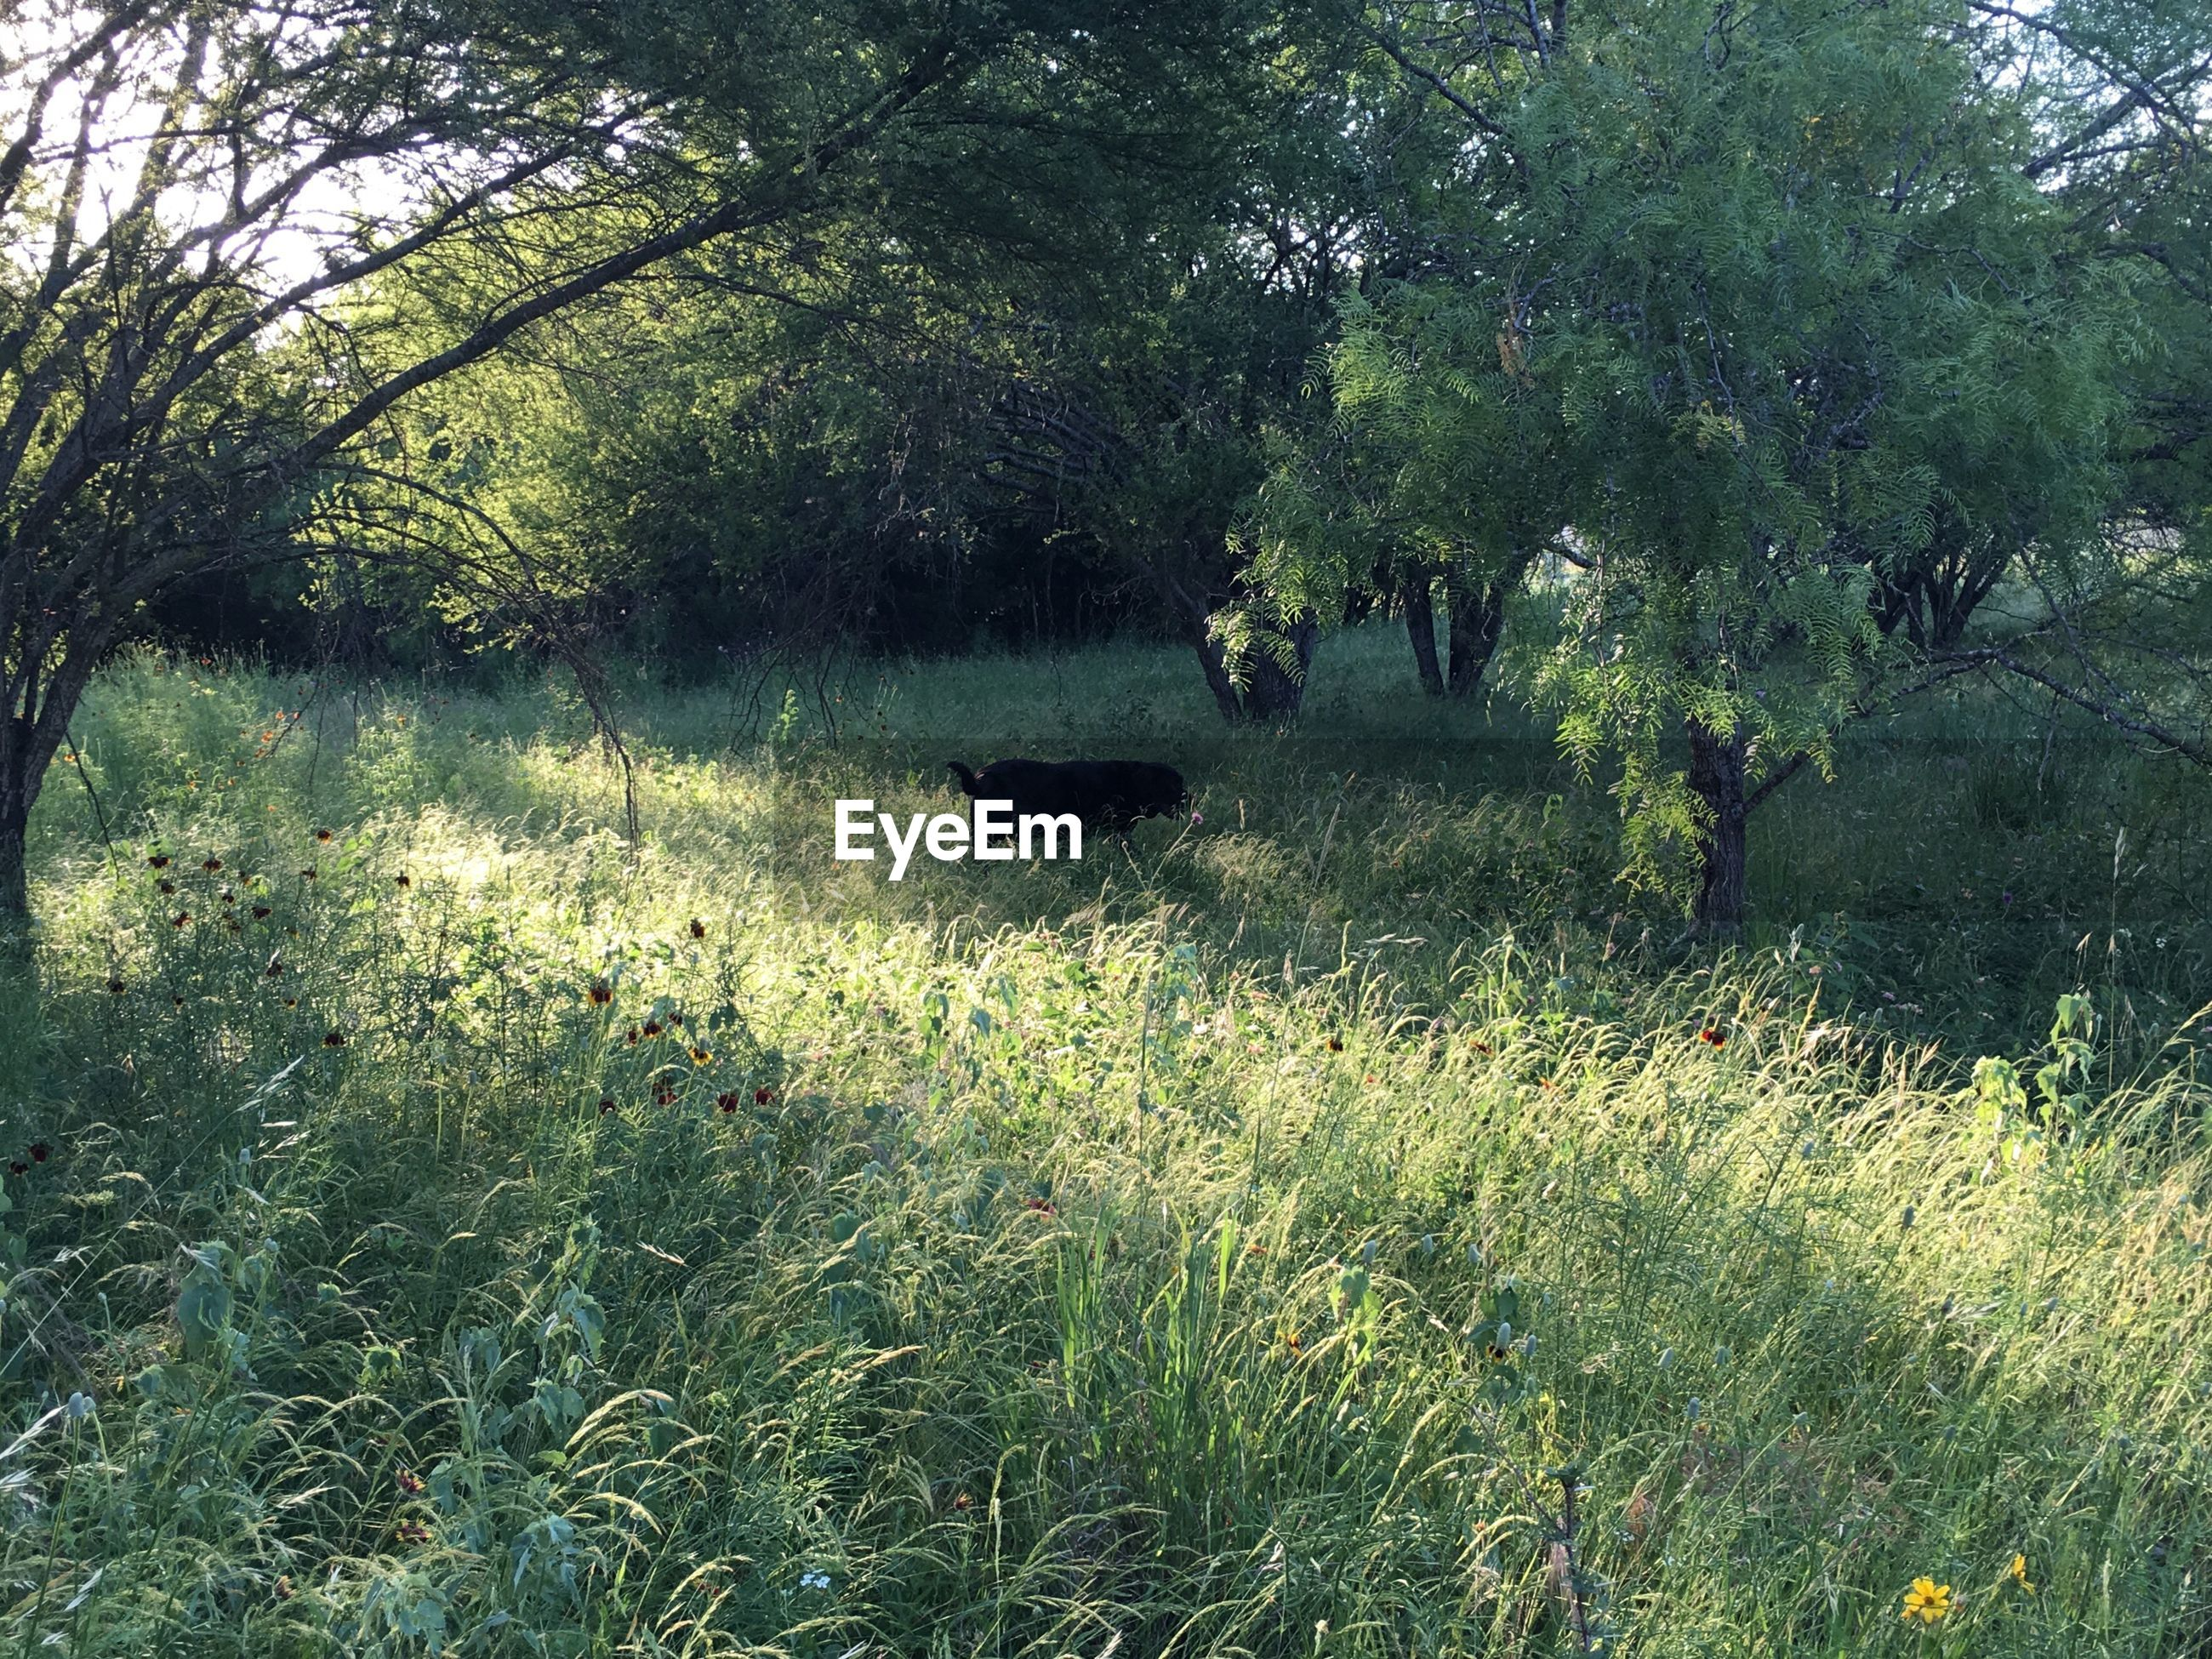 Dog on grassy field by trees